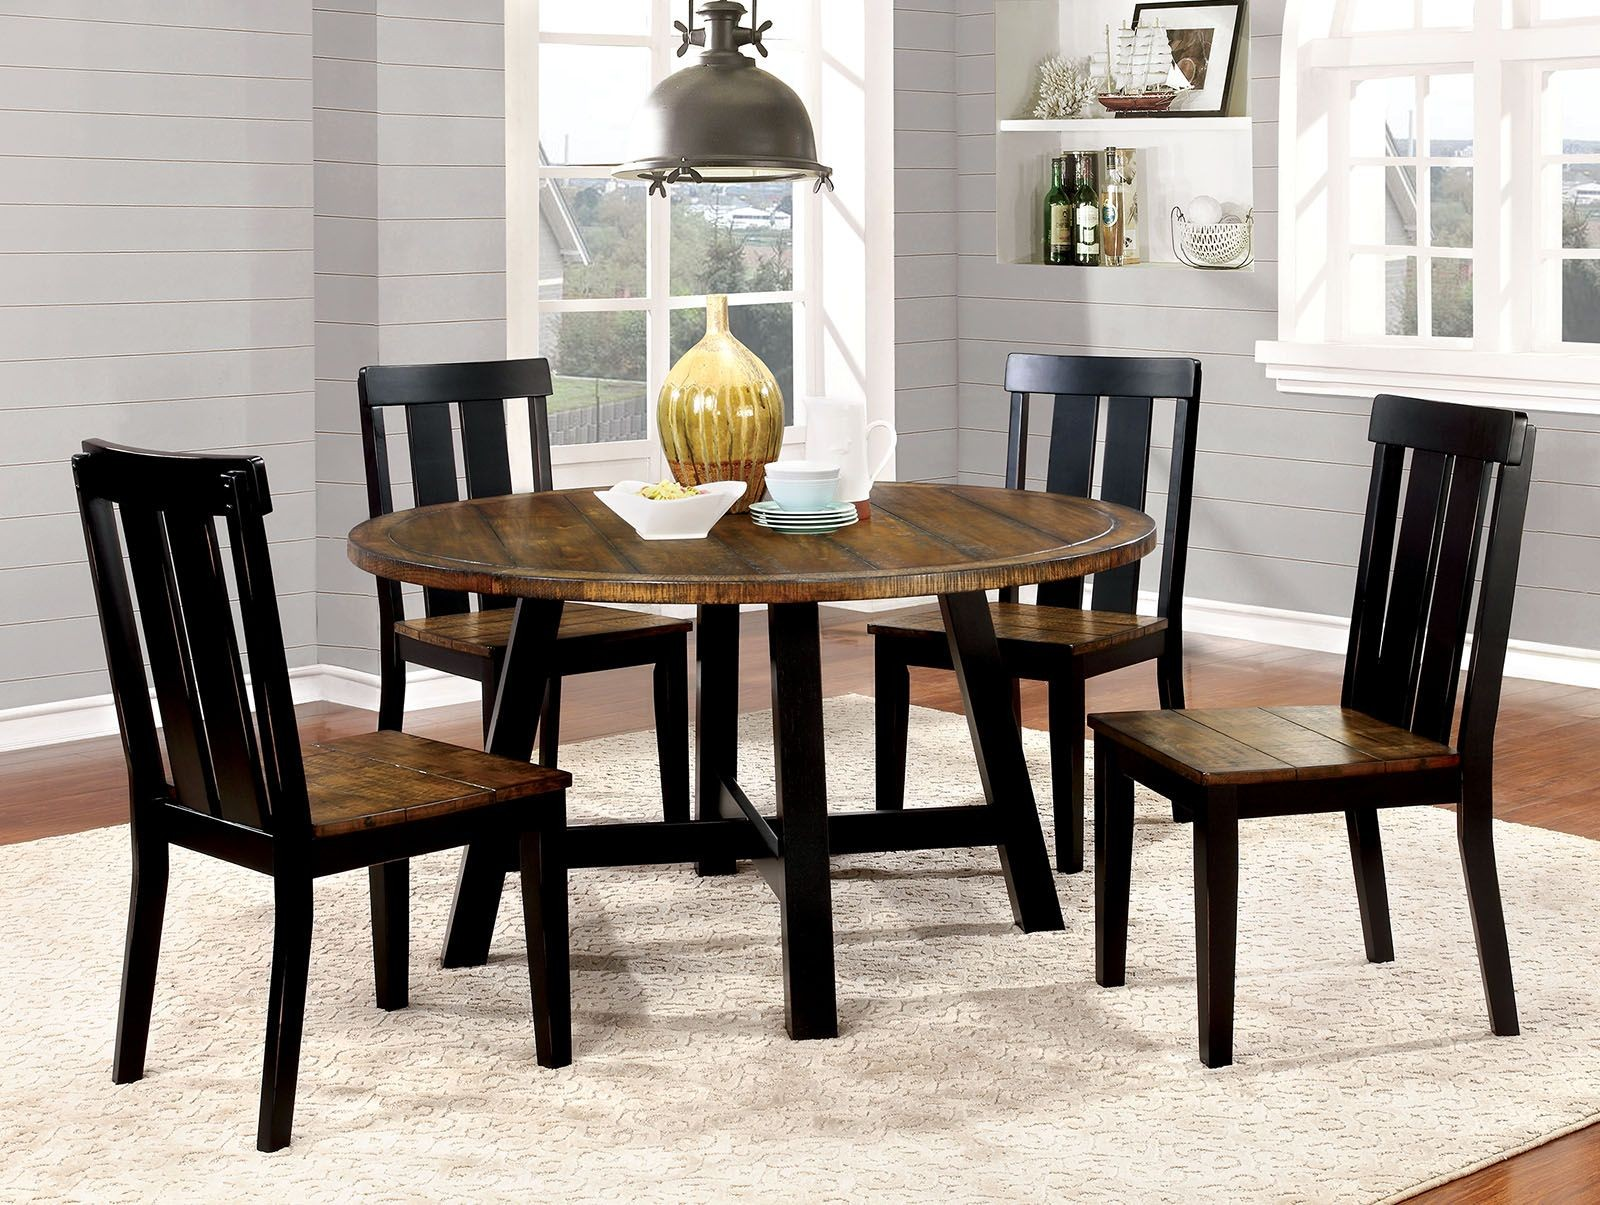 alana antique oak and black round dining room set cm3668rt furniture of america. Black Bedroom Furniture Sets. Home Design Ideas